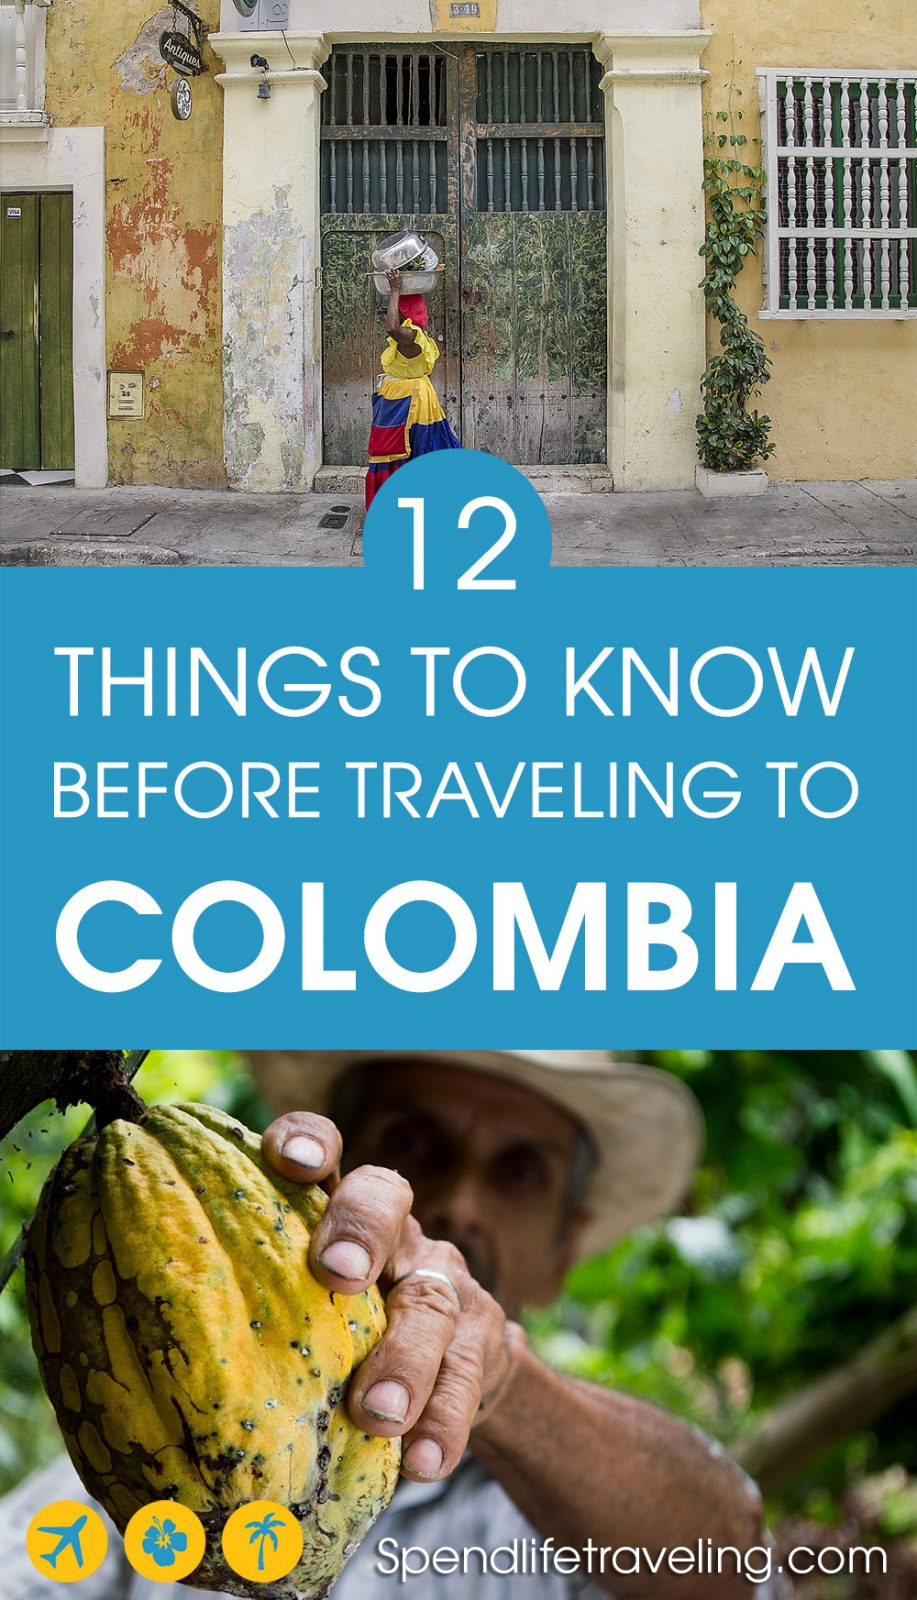 Are you thinking about traveling to Colombia? Colombia is a beautiful and very diverse country. These are some useful things to know before you travel to Colombia.